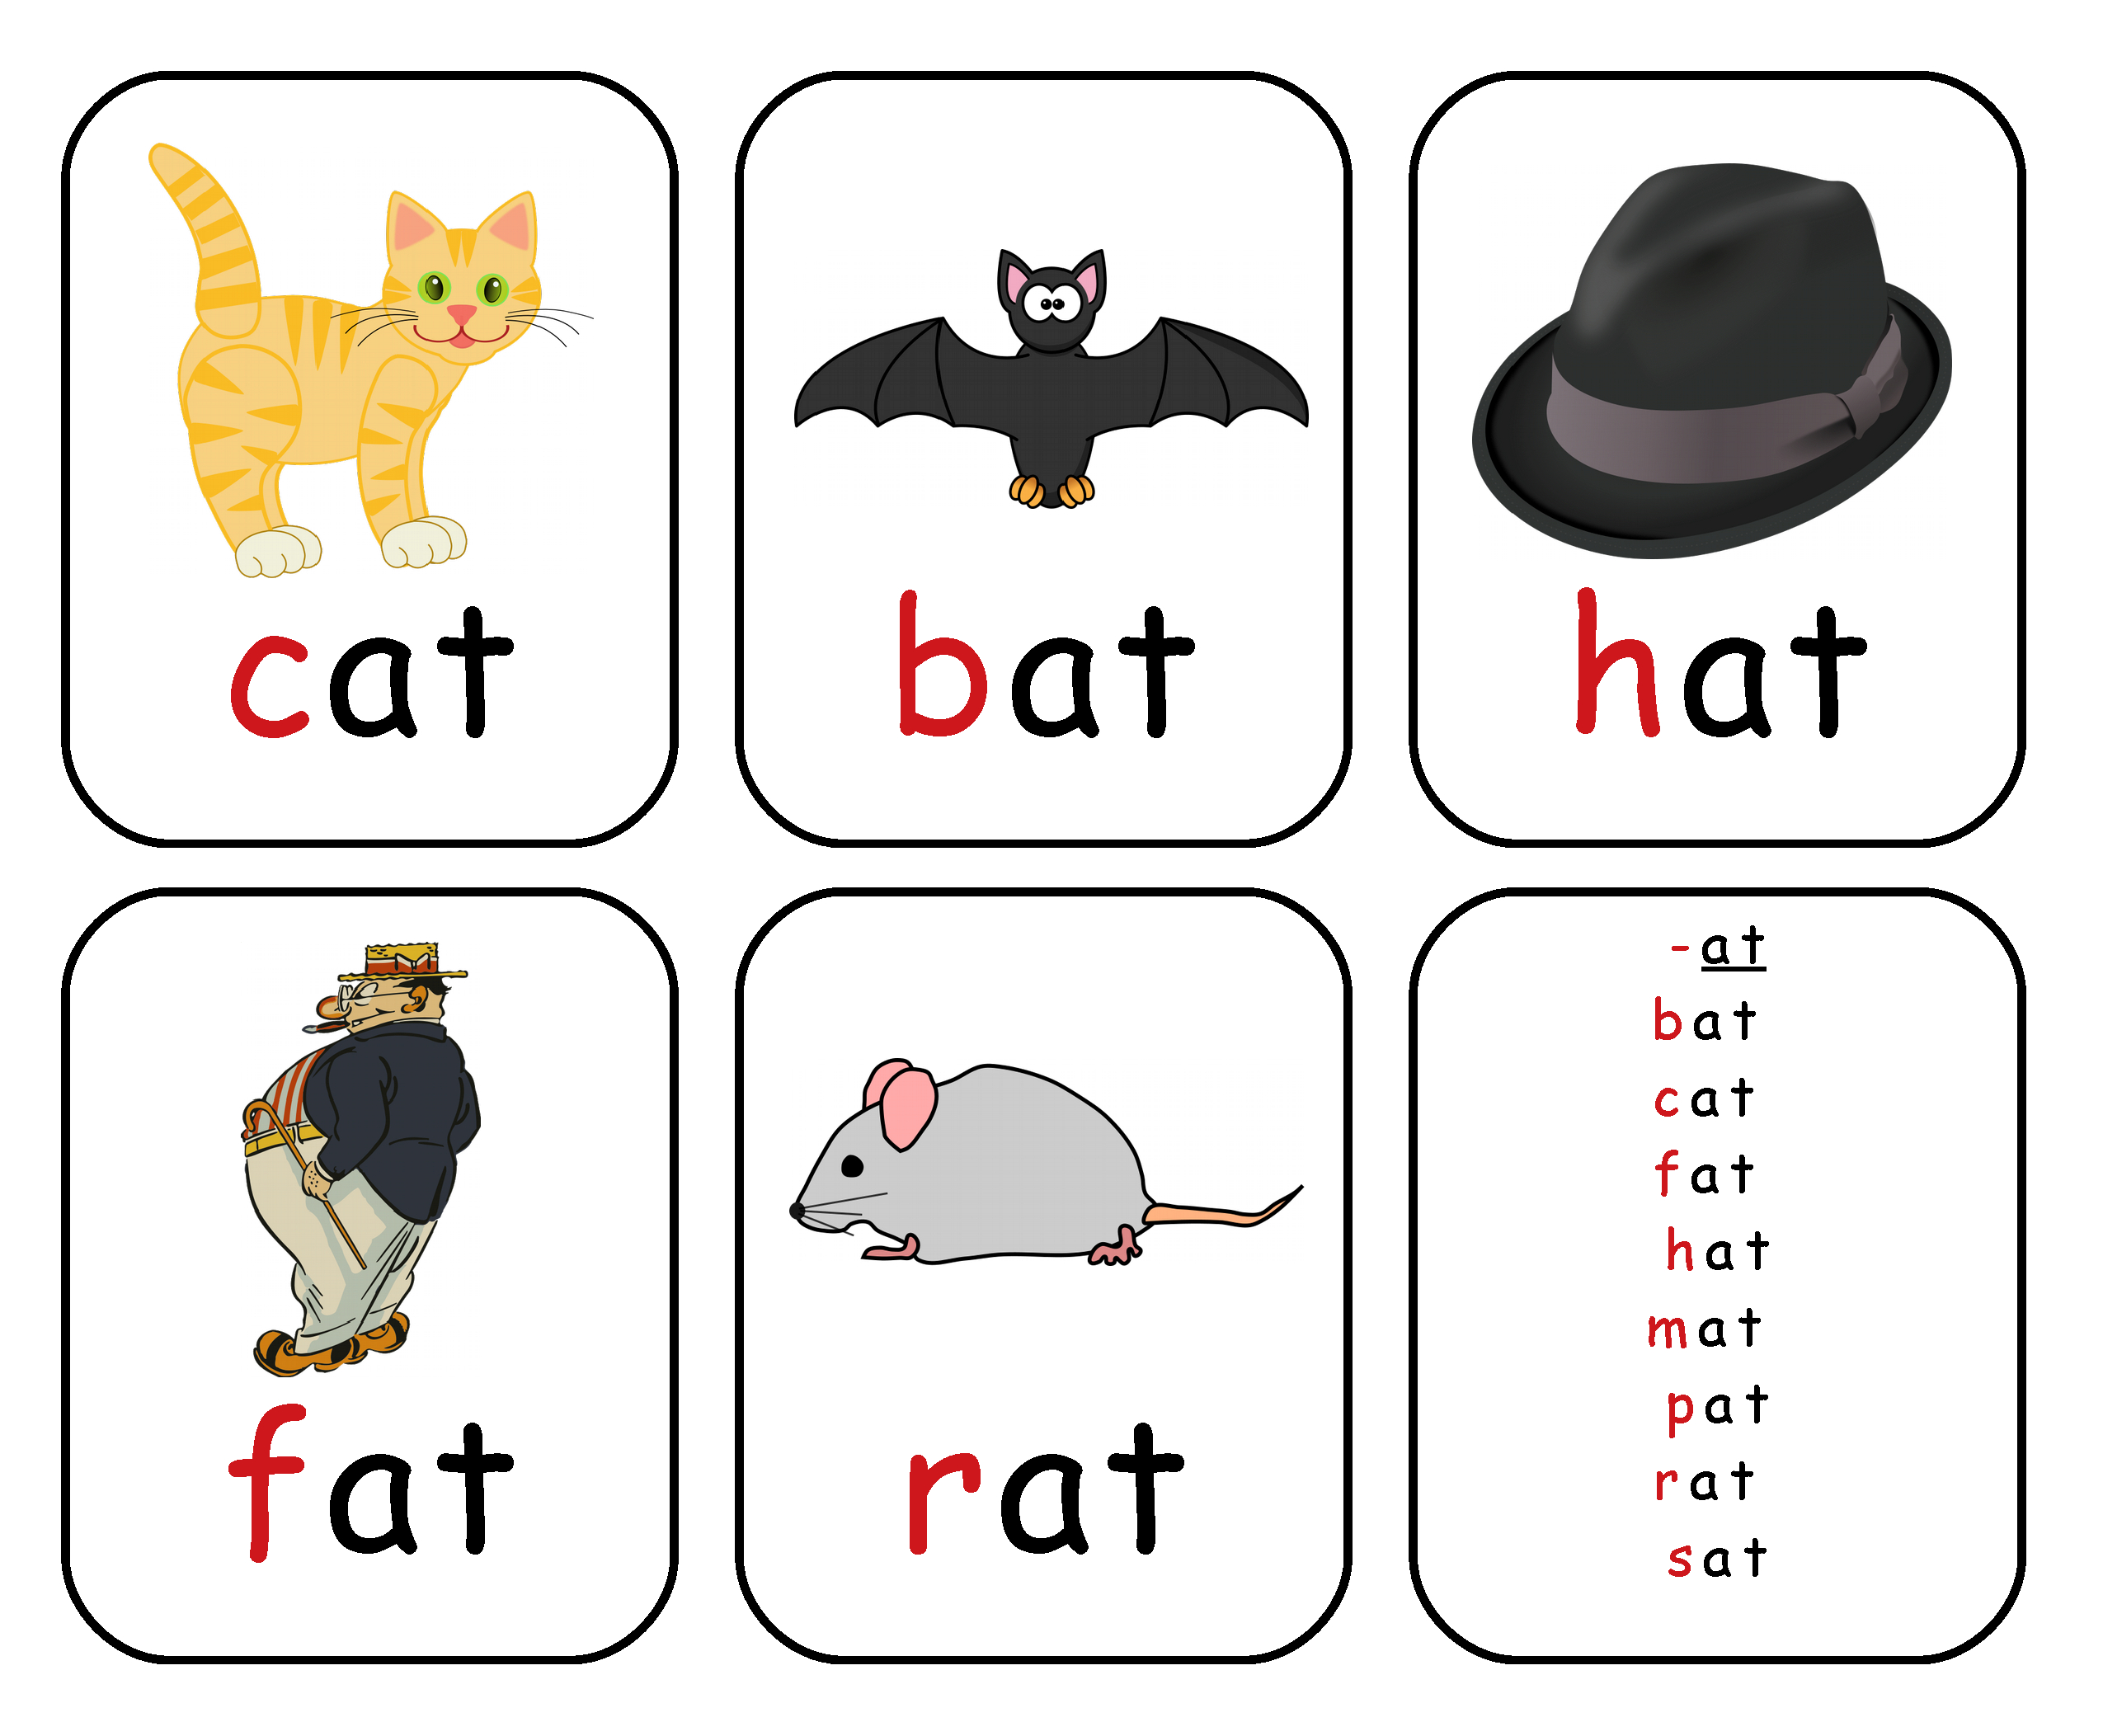 Free Printable Rhyming Words Flash Cards '-At' | Free Printable For - Free Printable Rhyming Words Flash Cards